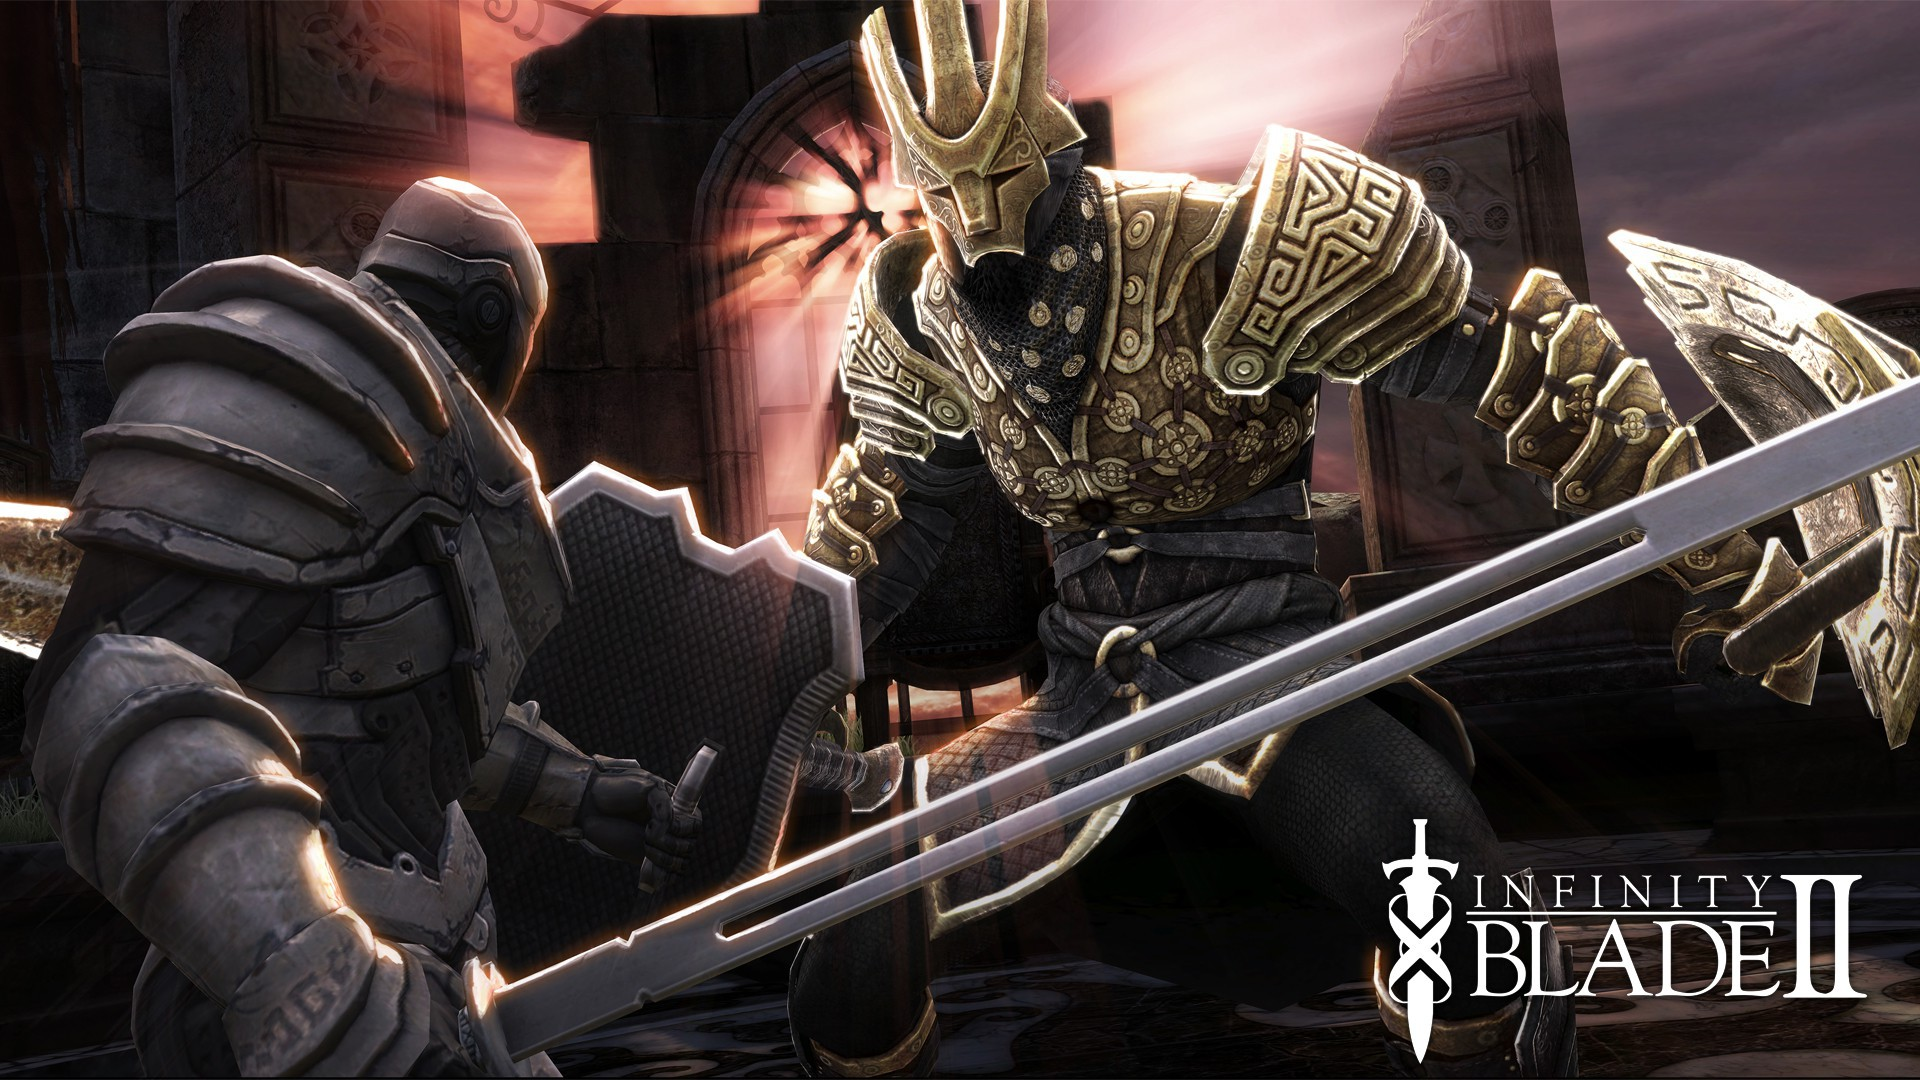 48+] Infinity Blade Wallpaper on WallpaperSafari